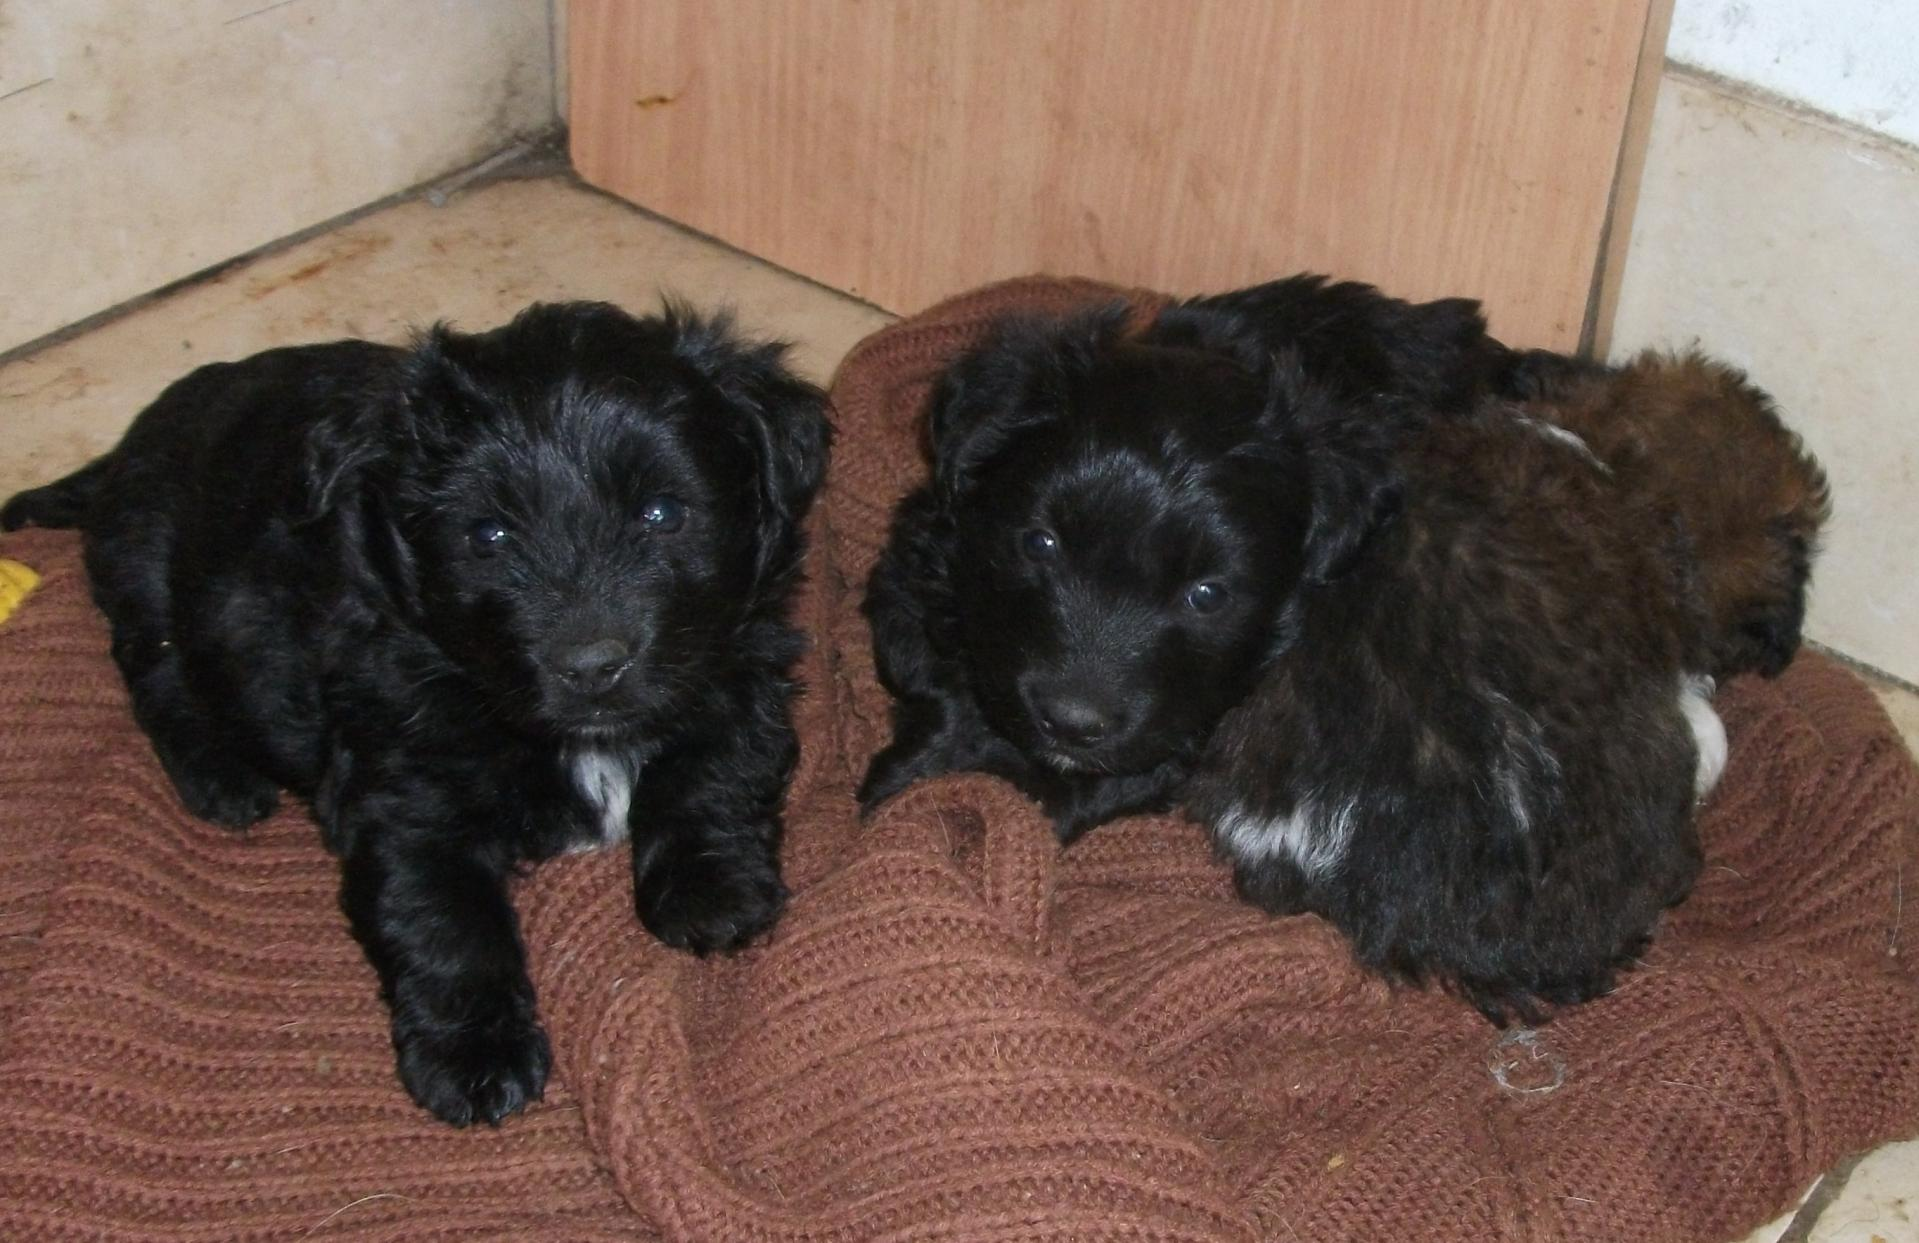 Black fluffy puppies